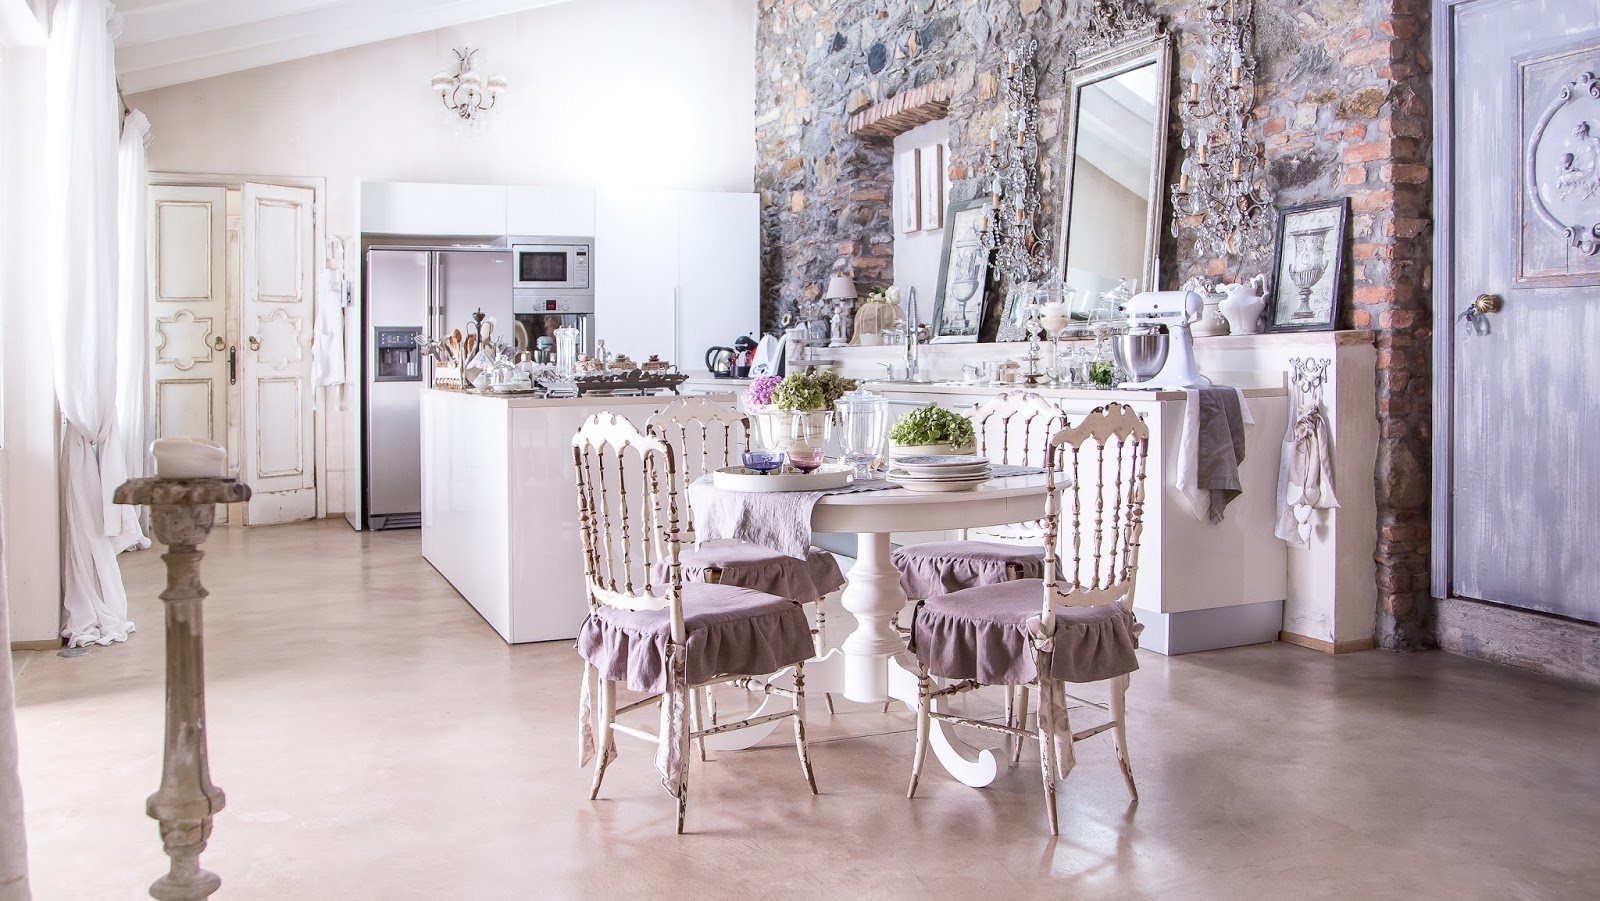 Una casa in stile provenzale shabby chic interiors for Foto di case arredate in stile moderno